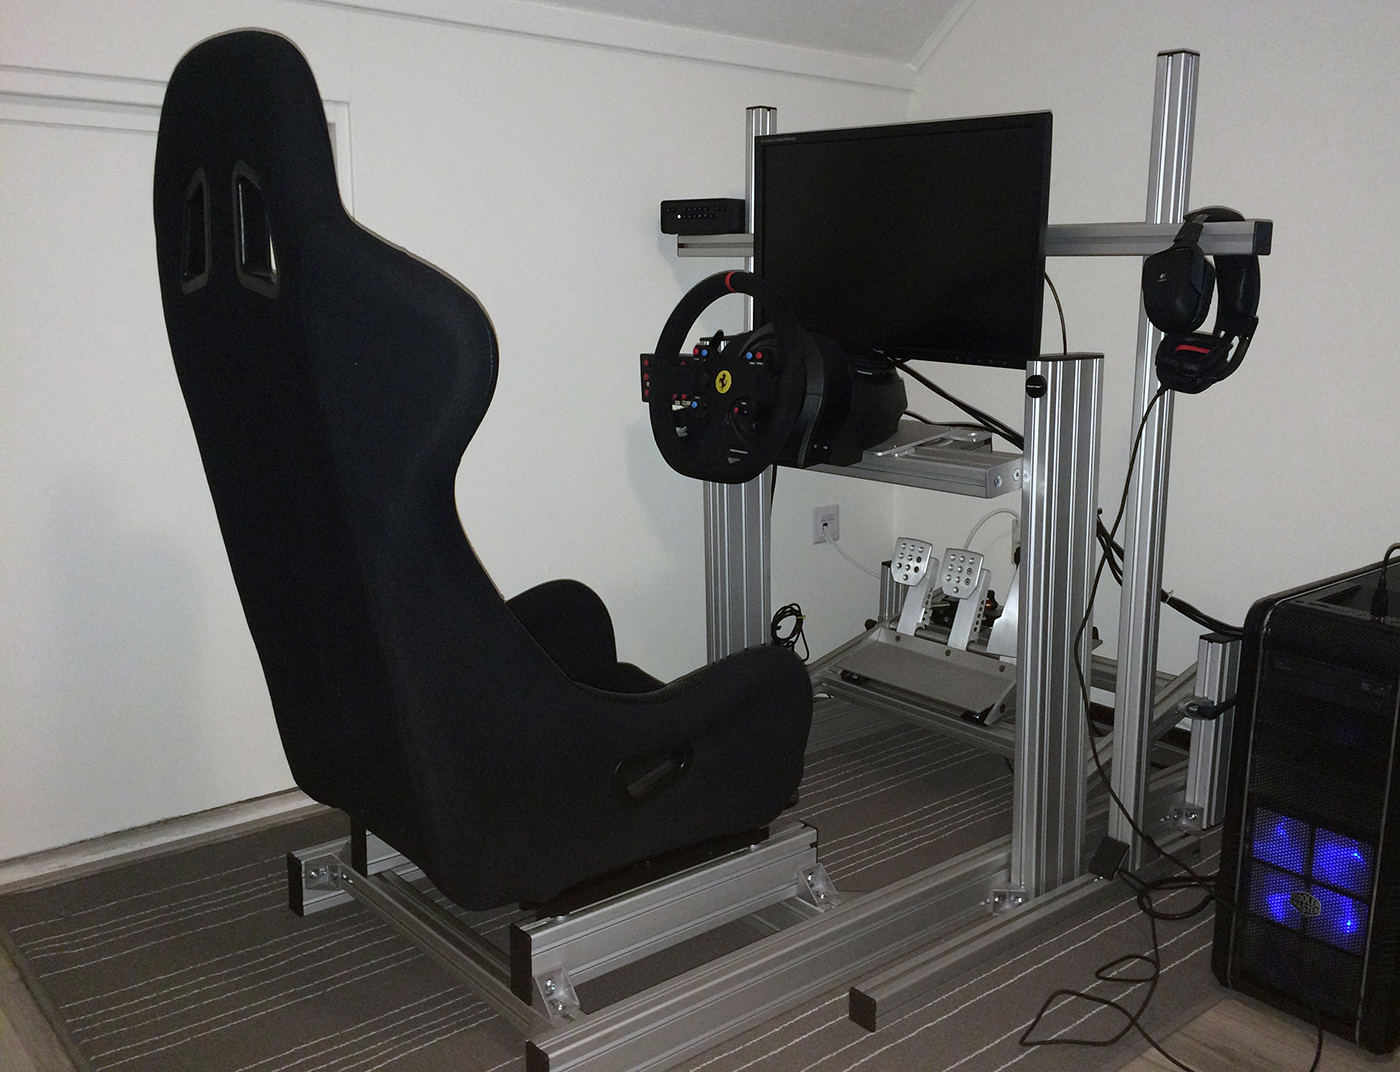 Sim-Lab GT1 rig review – NEO Endurance